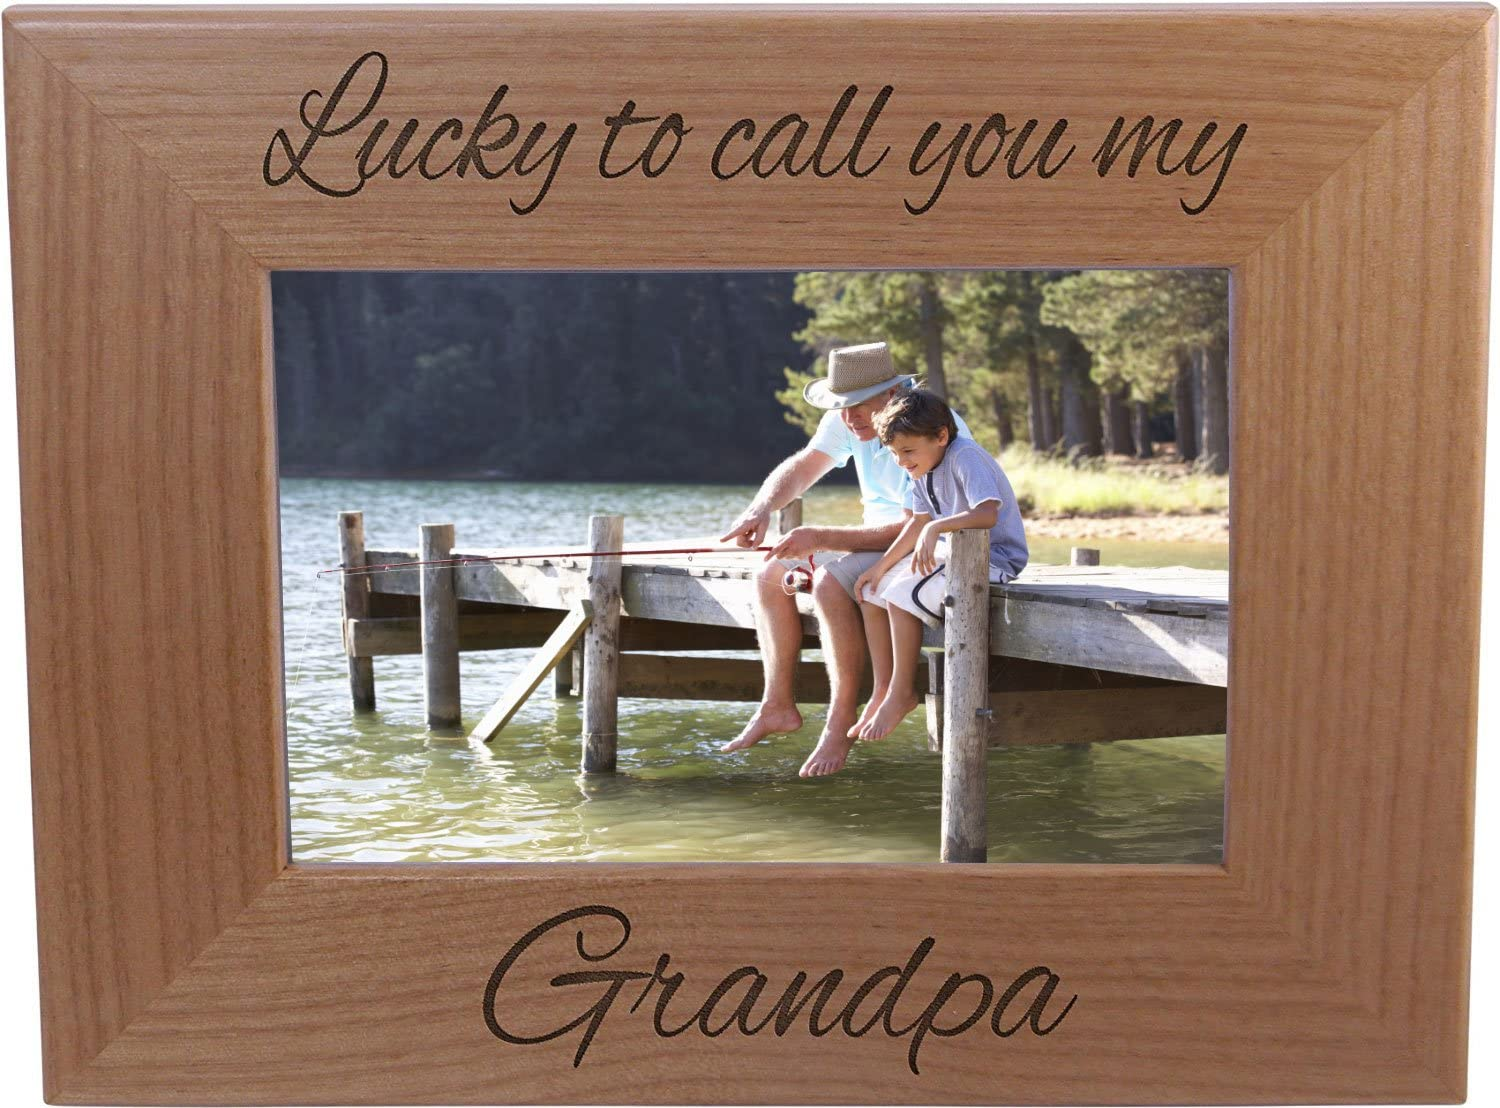 Lucky To Call You My Grandpa - 4x6 Inch Wood Picture Frame - Great Gift for Father's Day, Birthday, or Christmas Gift for Dad, Grandpa, Grandfather, Papa, Husband